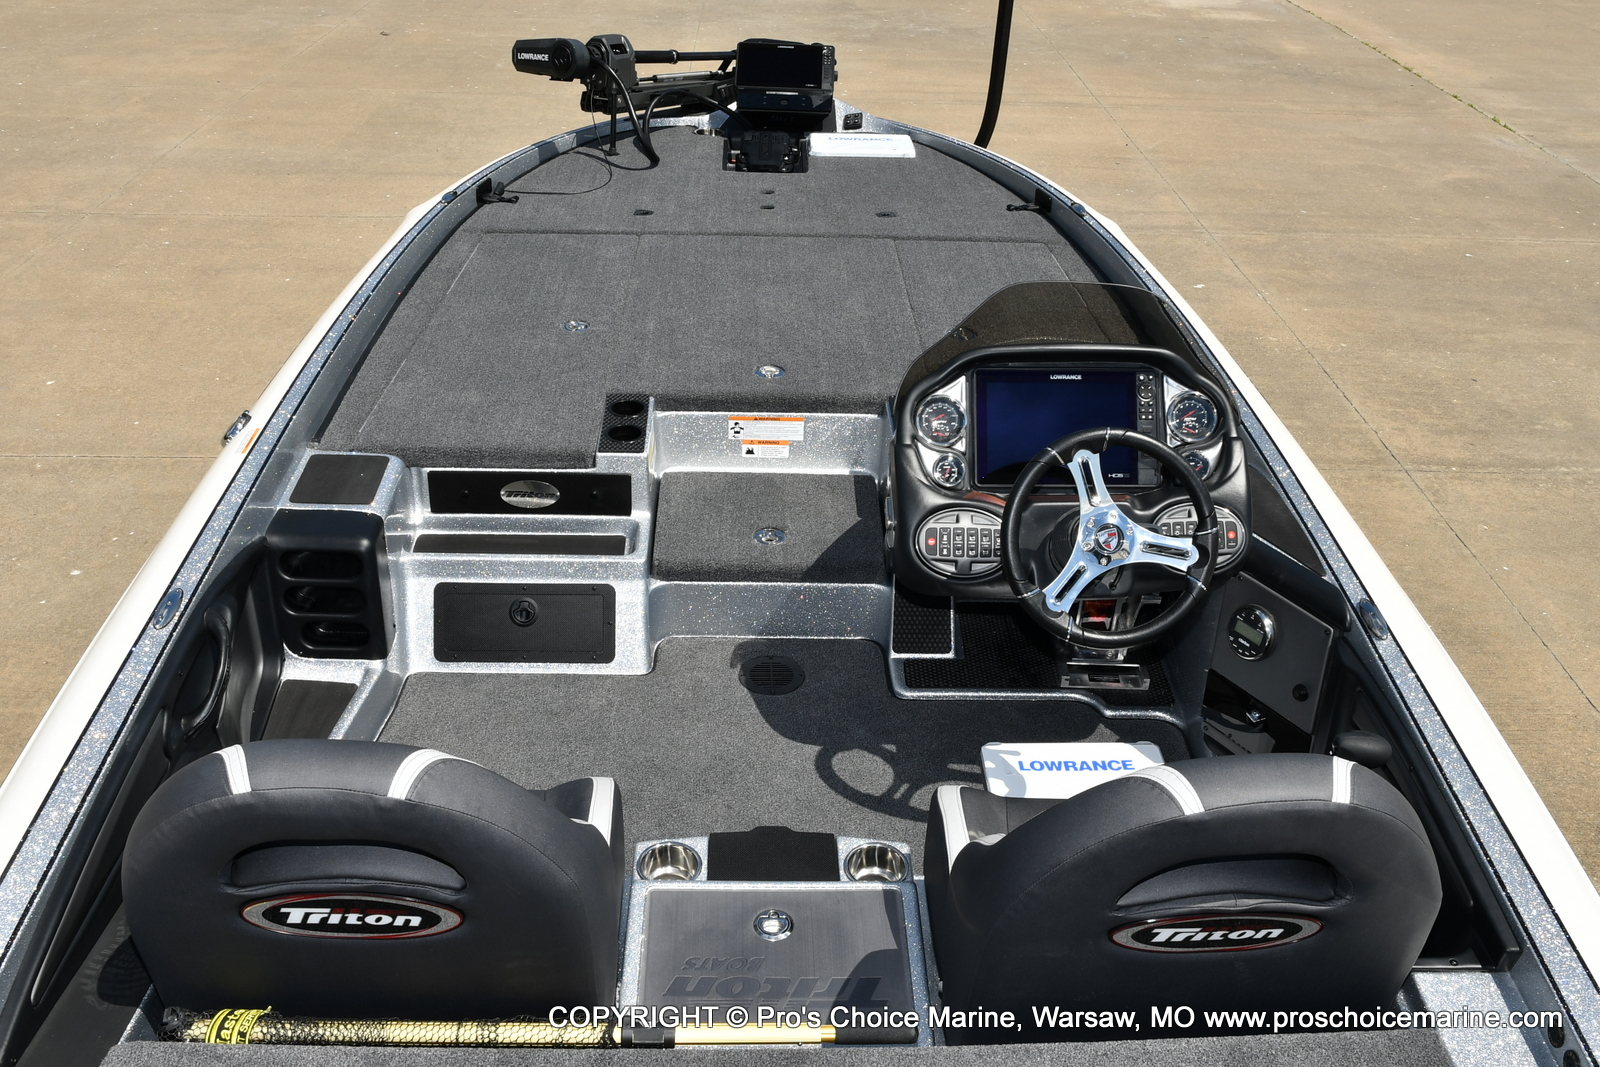 2021 Triton boat for sale, model of the boat is 21 TRX Patriot & Image # 18 of 50